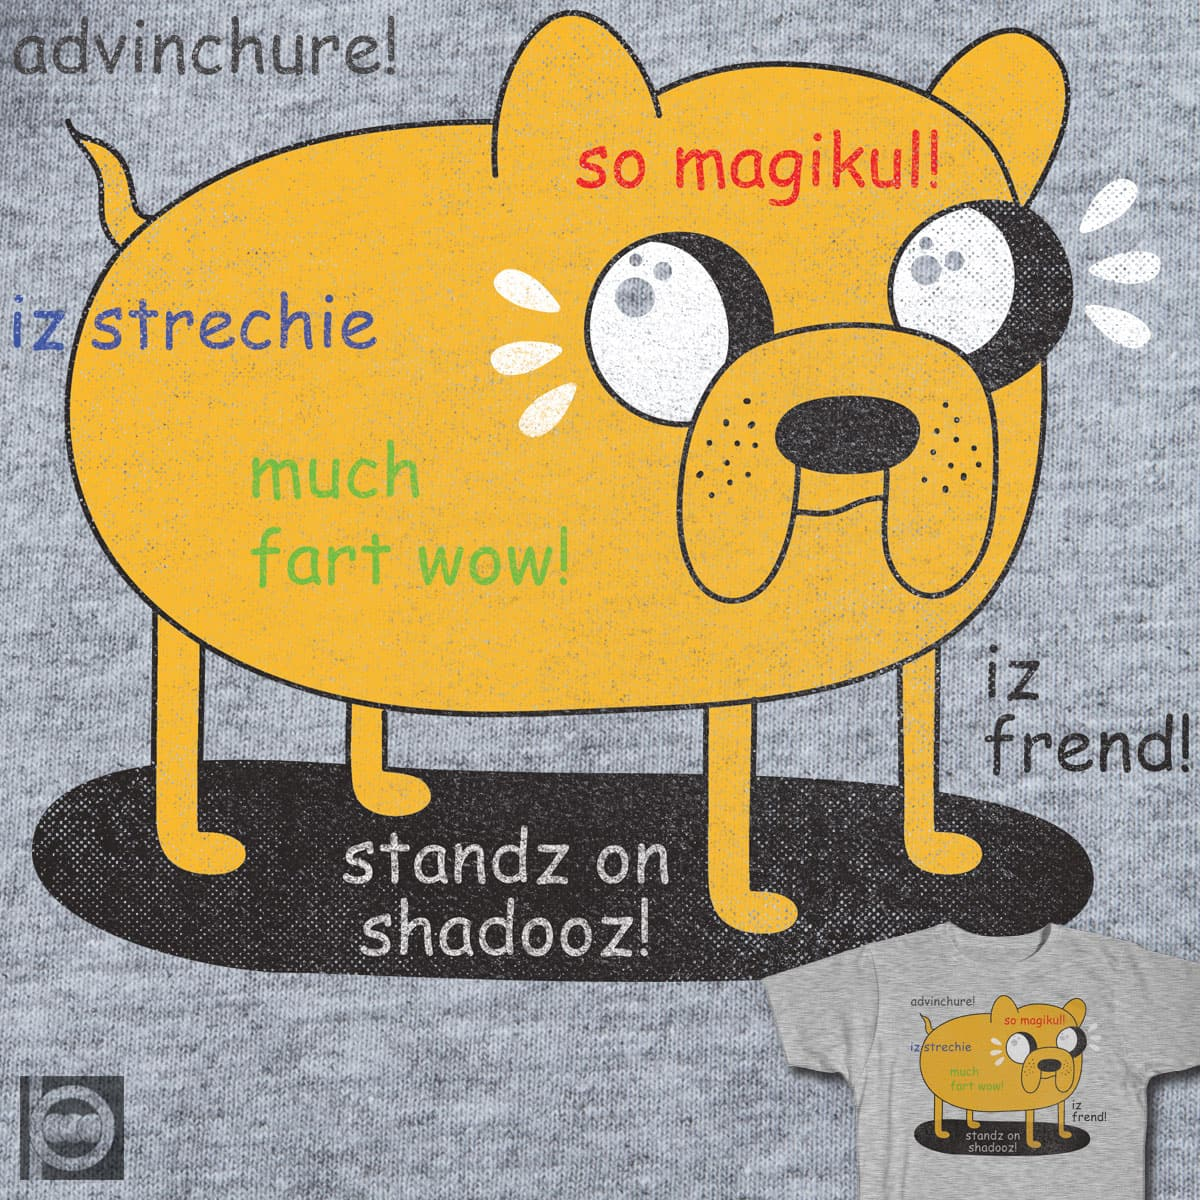 MUCH FRIEND, WOW! by BeanePod on Threadless